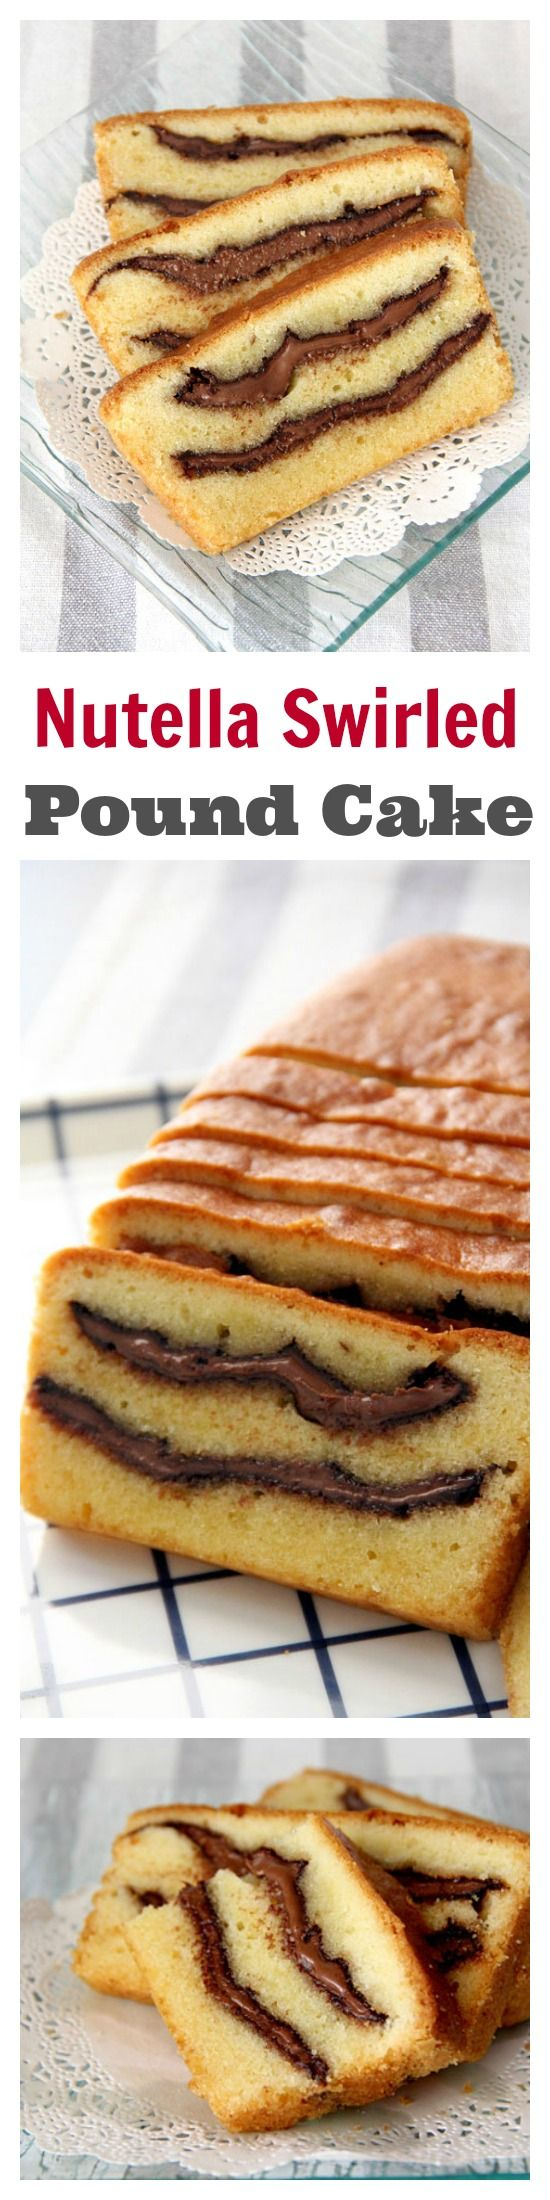 Nutella swirled pound cake - thick, gooey Nutella swirls in rich buttery pound cake | rasamalaysia.com